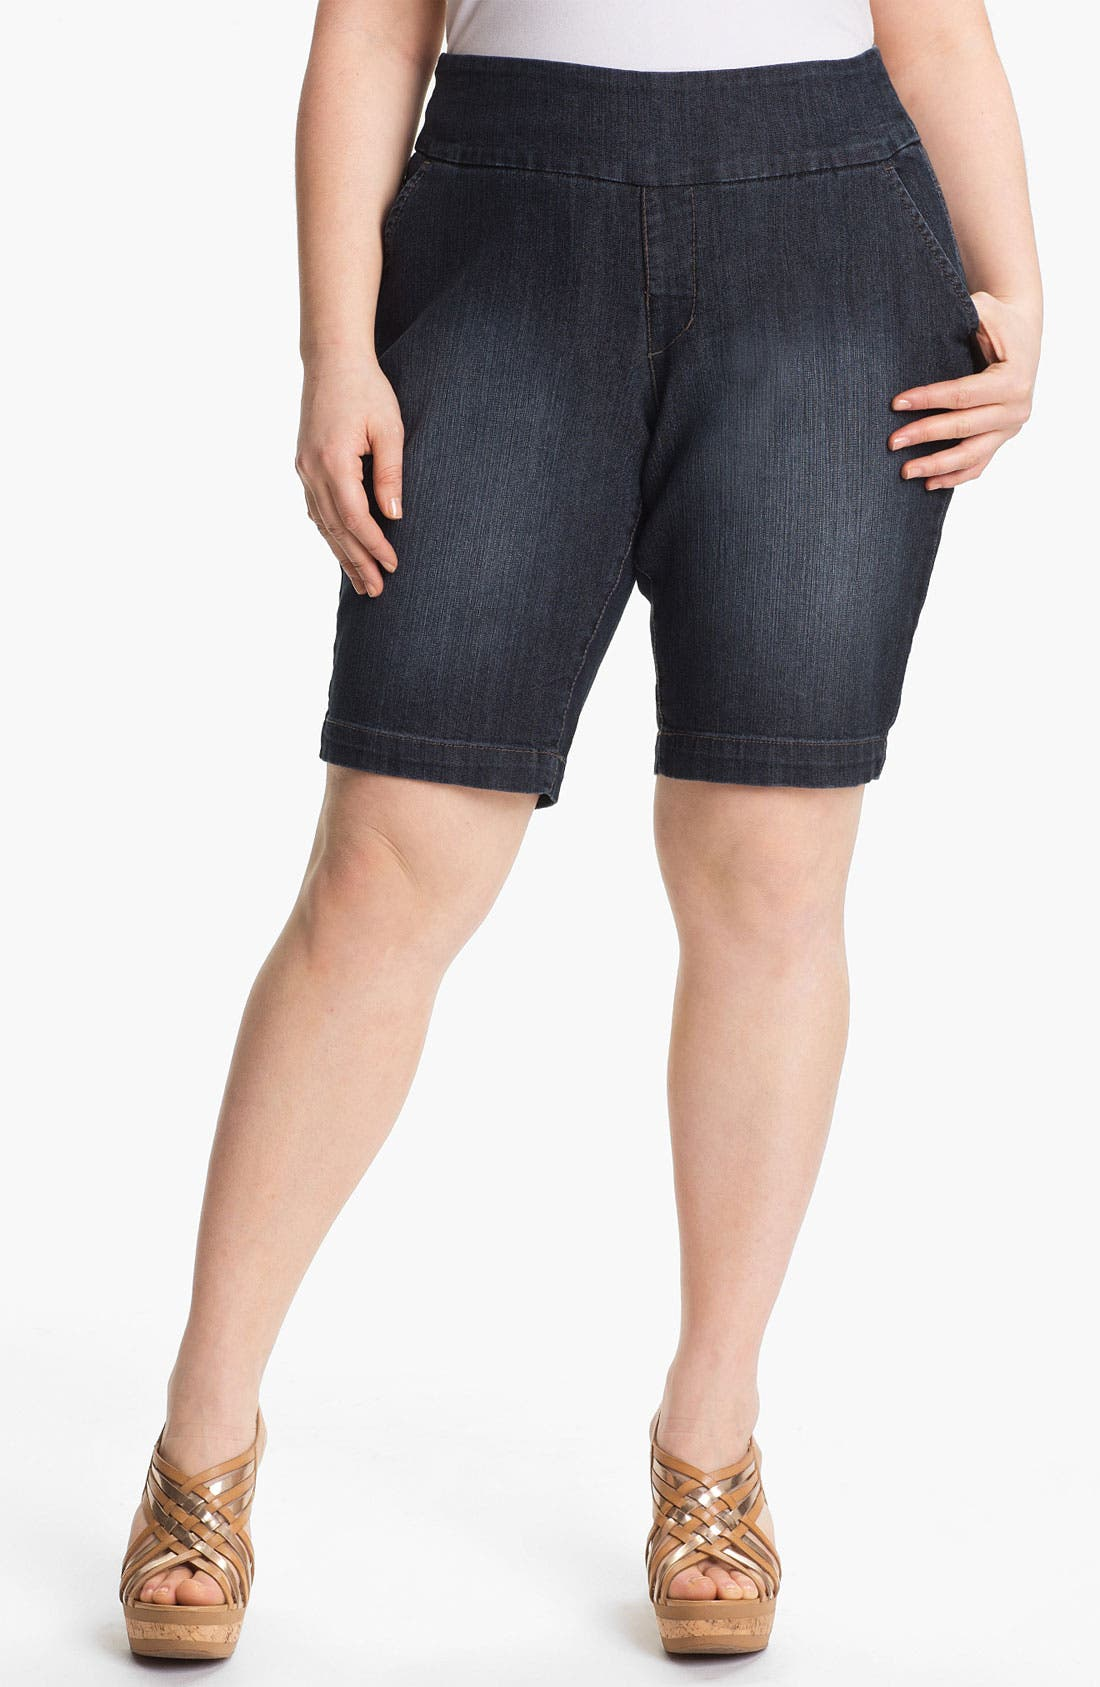 Alternate Image 1 Selected - Jag Jeans 'Louie' Bermuda Shorts (Plus) (Online Only)